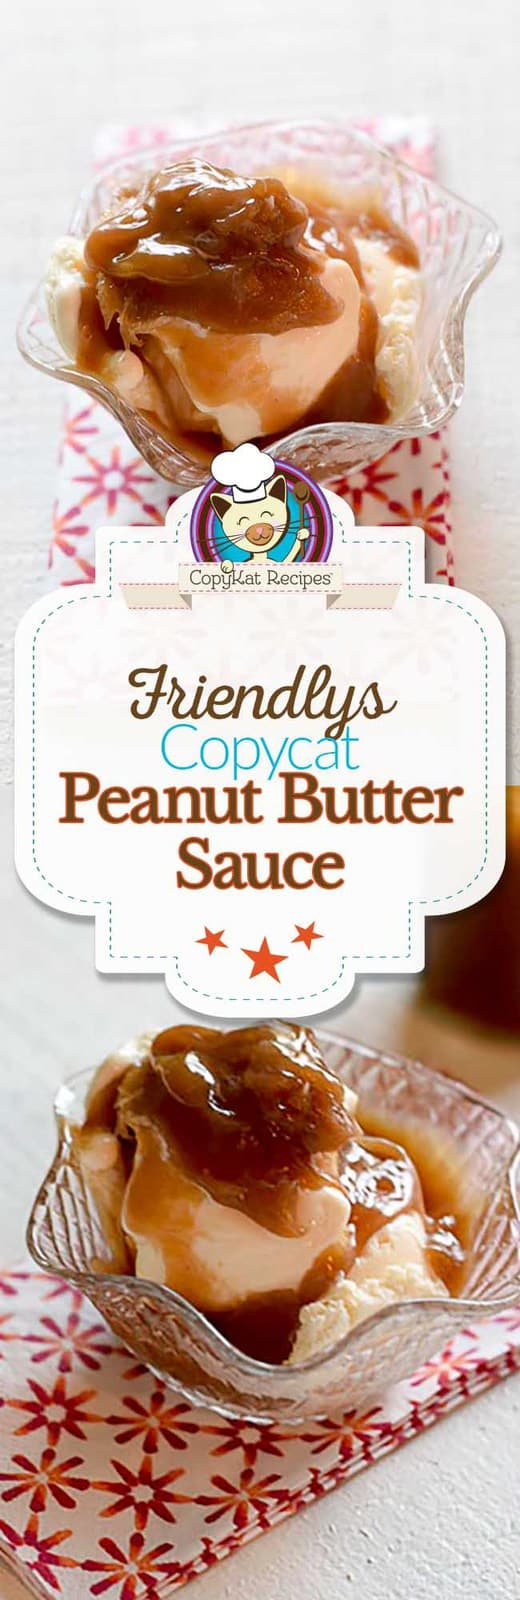 You can recreate Friendly's Peanut Butter Sauce at home, ice cream never tasted so good.